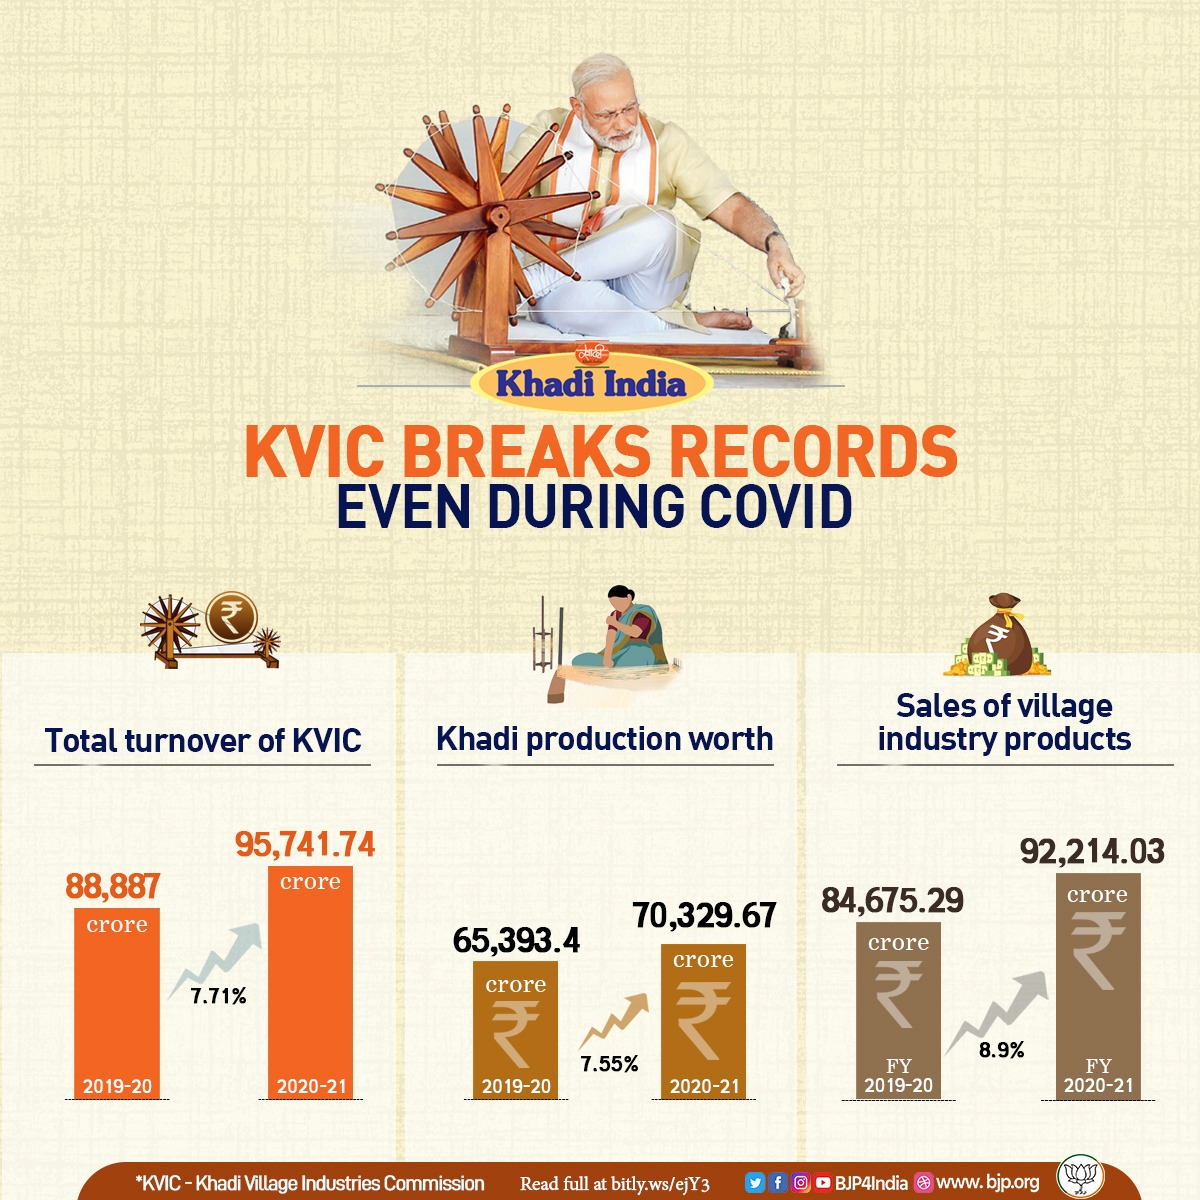 Khadi Village Industries Commission breaks several records even during COVID-19.   Khadi production - 2019-20 - Rs 65,393.4 crore 2020-21 - Rs 70,329.67 crore  Sales of village industry products - FY 2019-20 - Rs 84,675.29 crore  FY 2020-21 - Rs 92,214.03 crore https://t.co/TyPZNCAzOg